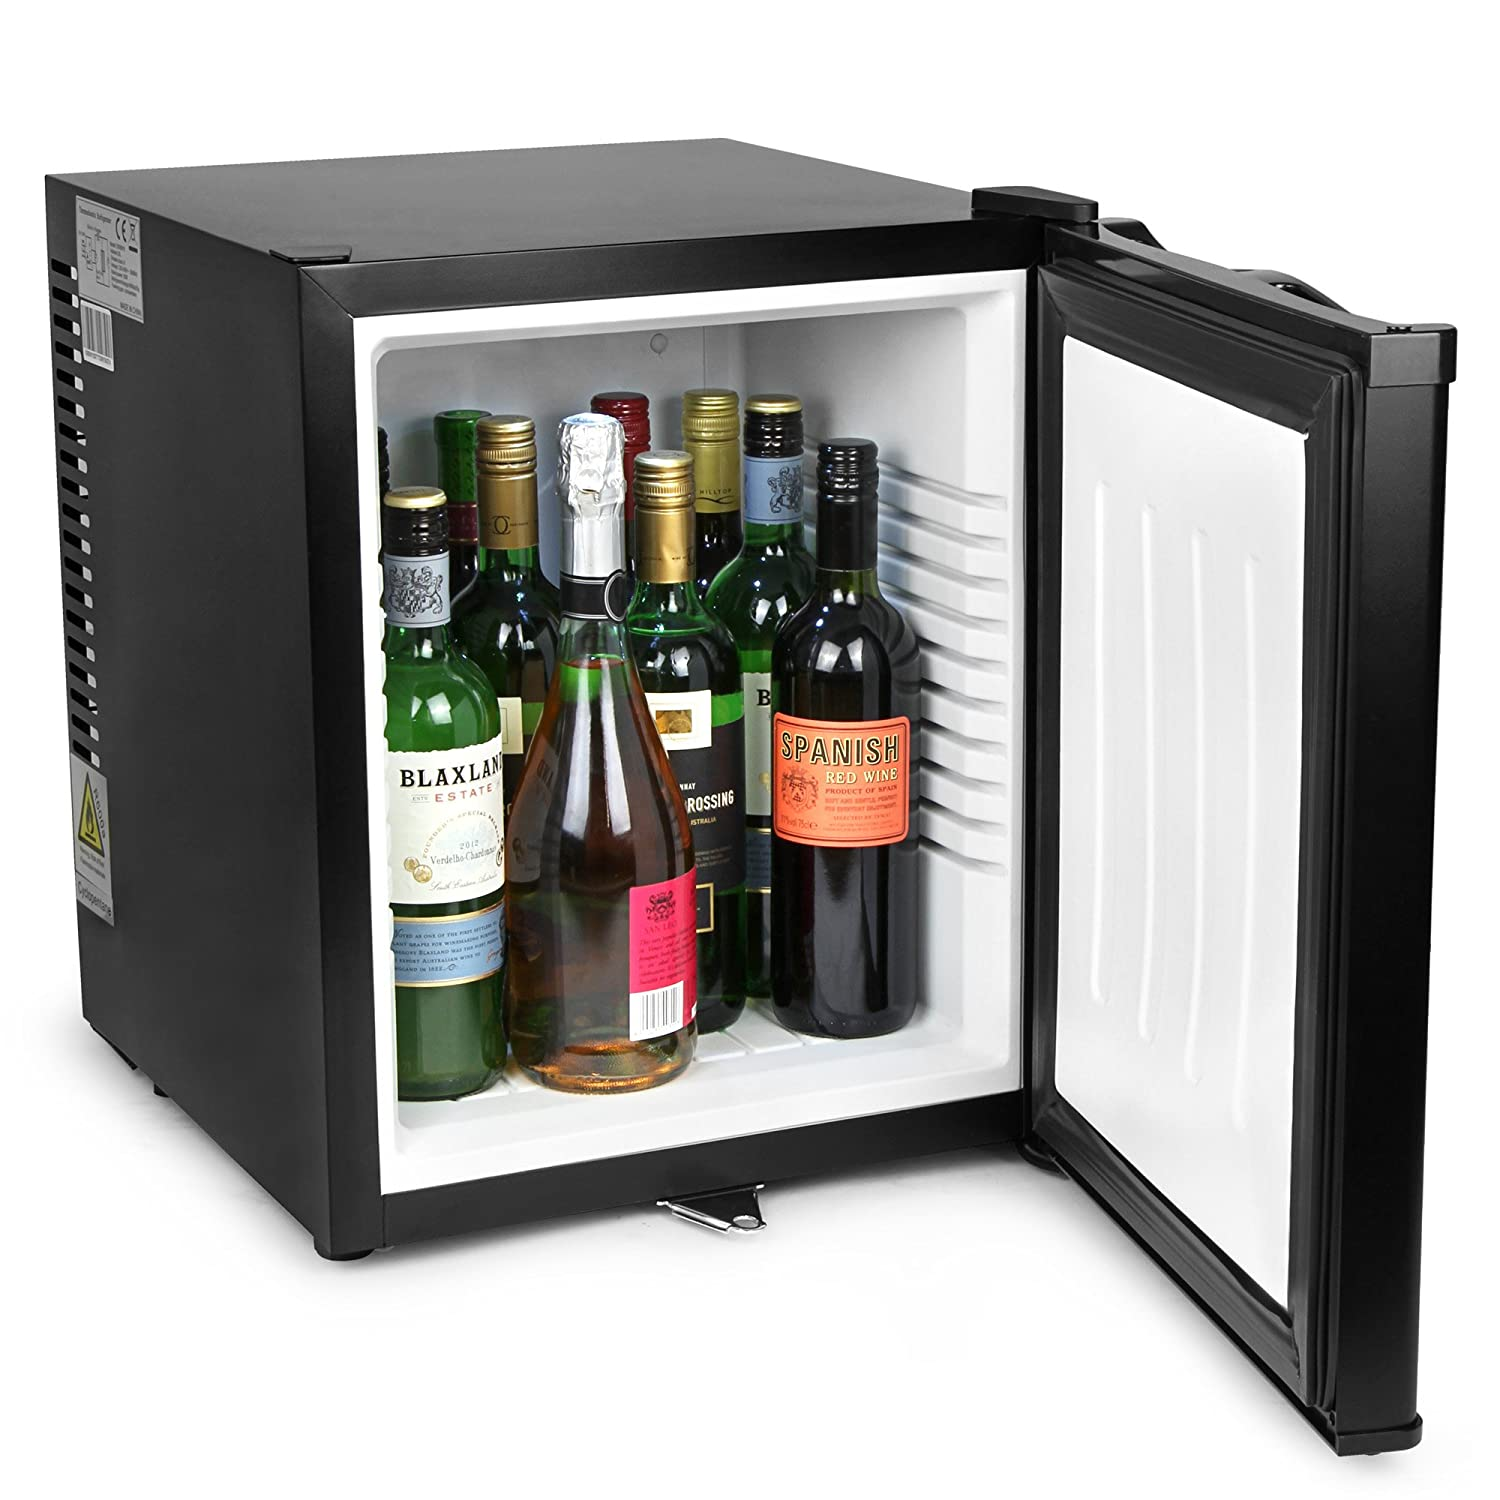 bar@drinkstuff ChillQuiet Silent Mini Bar Fridge 32ltr Black by Quiet Running Mini Bar, Hotel Mini Bar, Compact Fridge